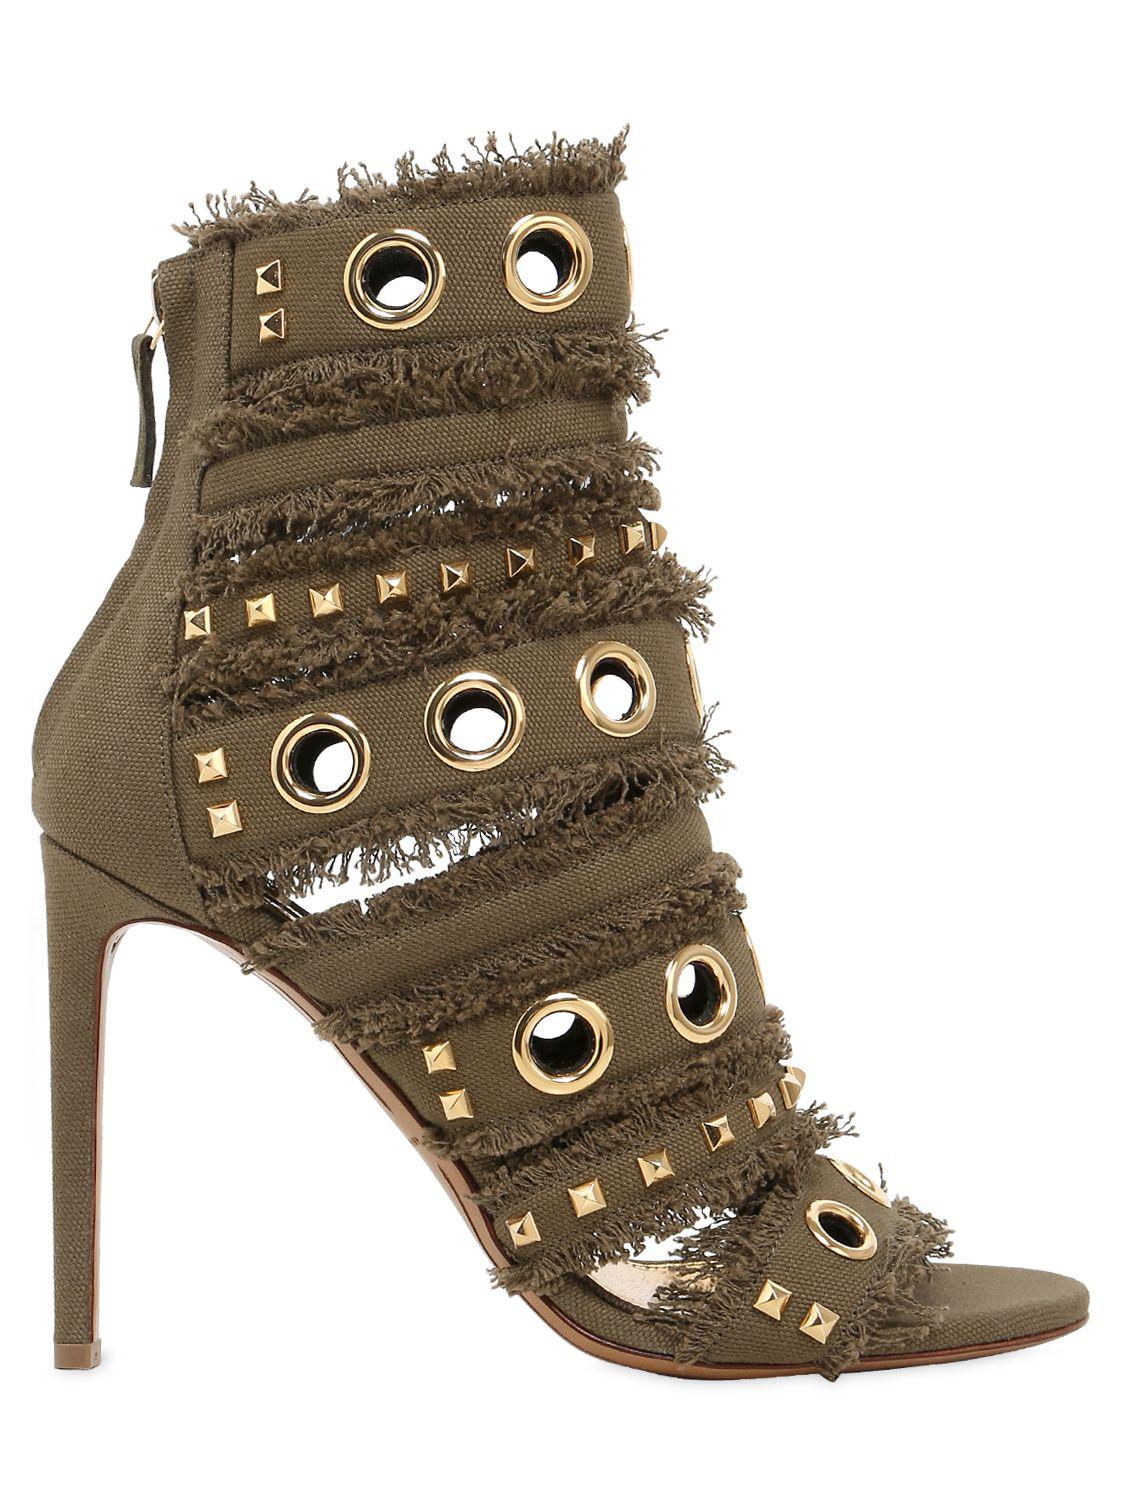 6e2c4f997 Lyst - Alexandre Vauthier 100mm Studs   Fringe Canvas Sandals in Green